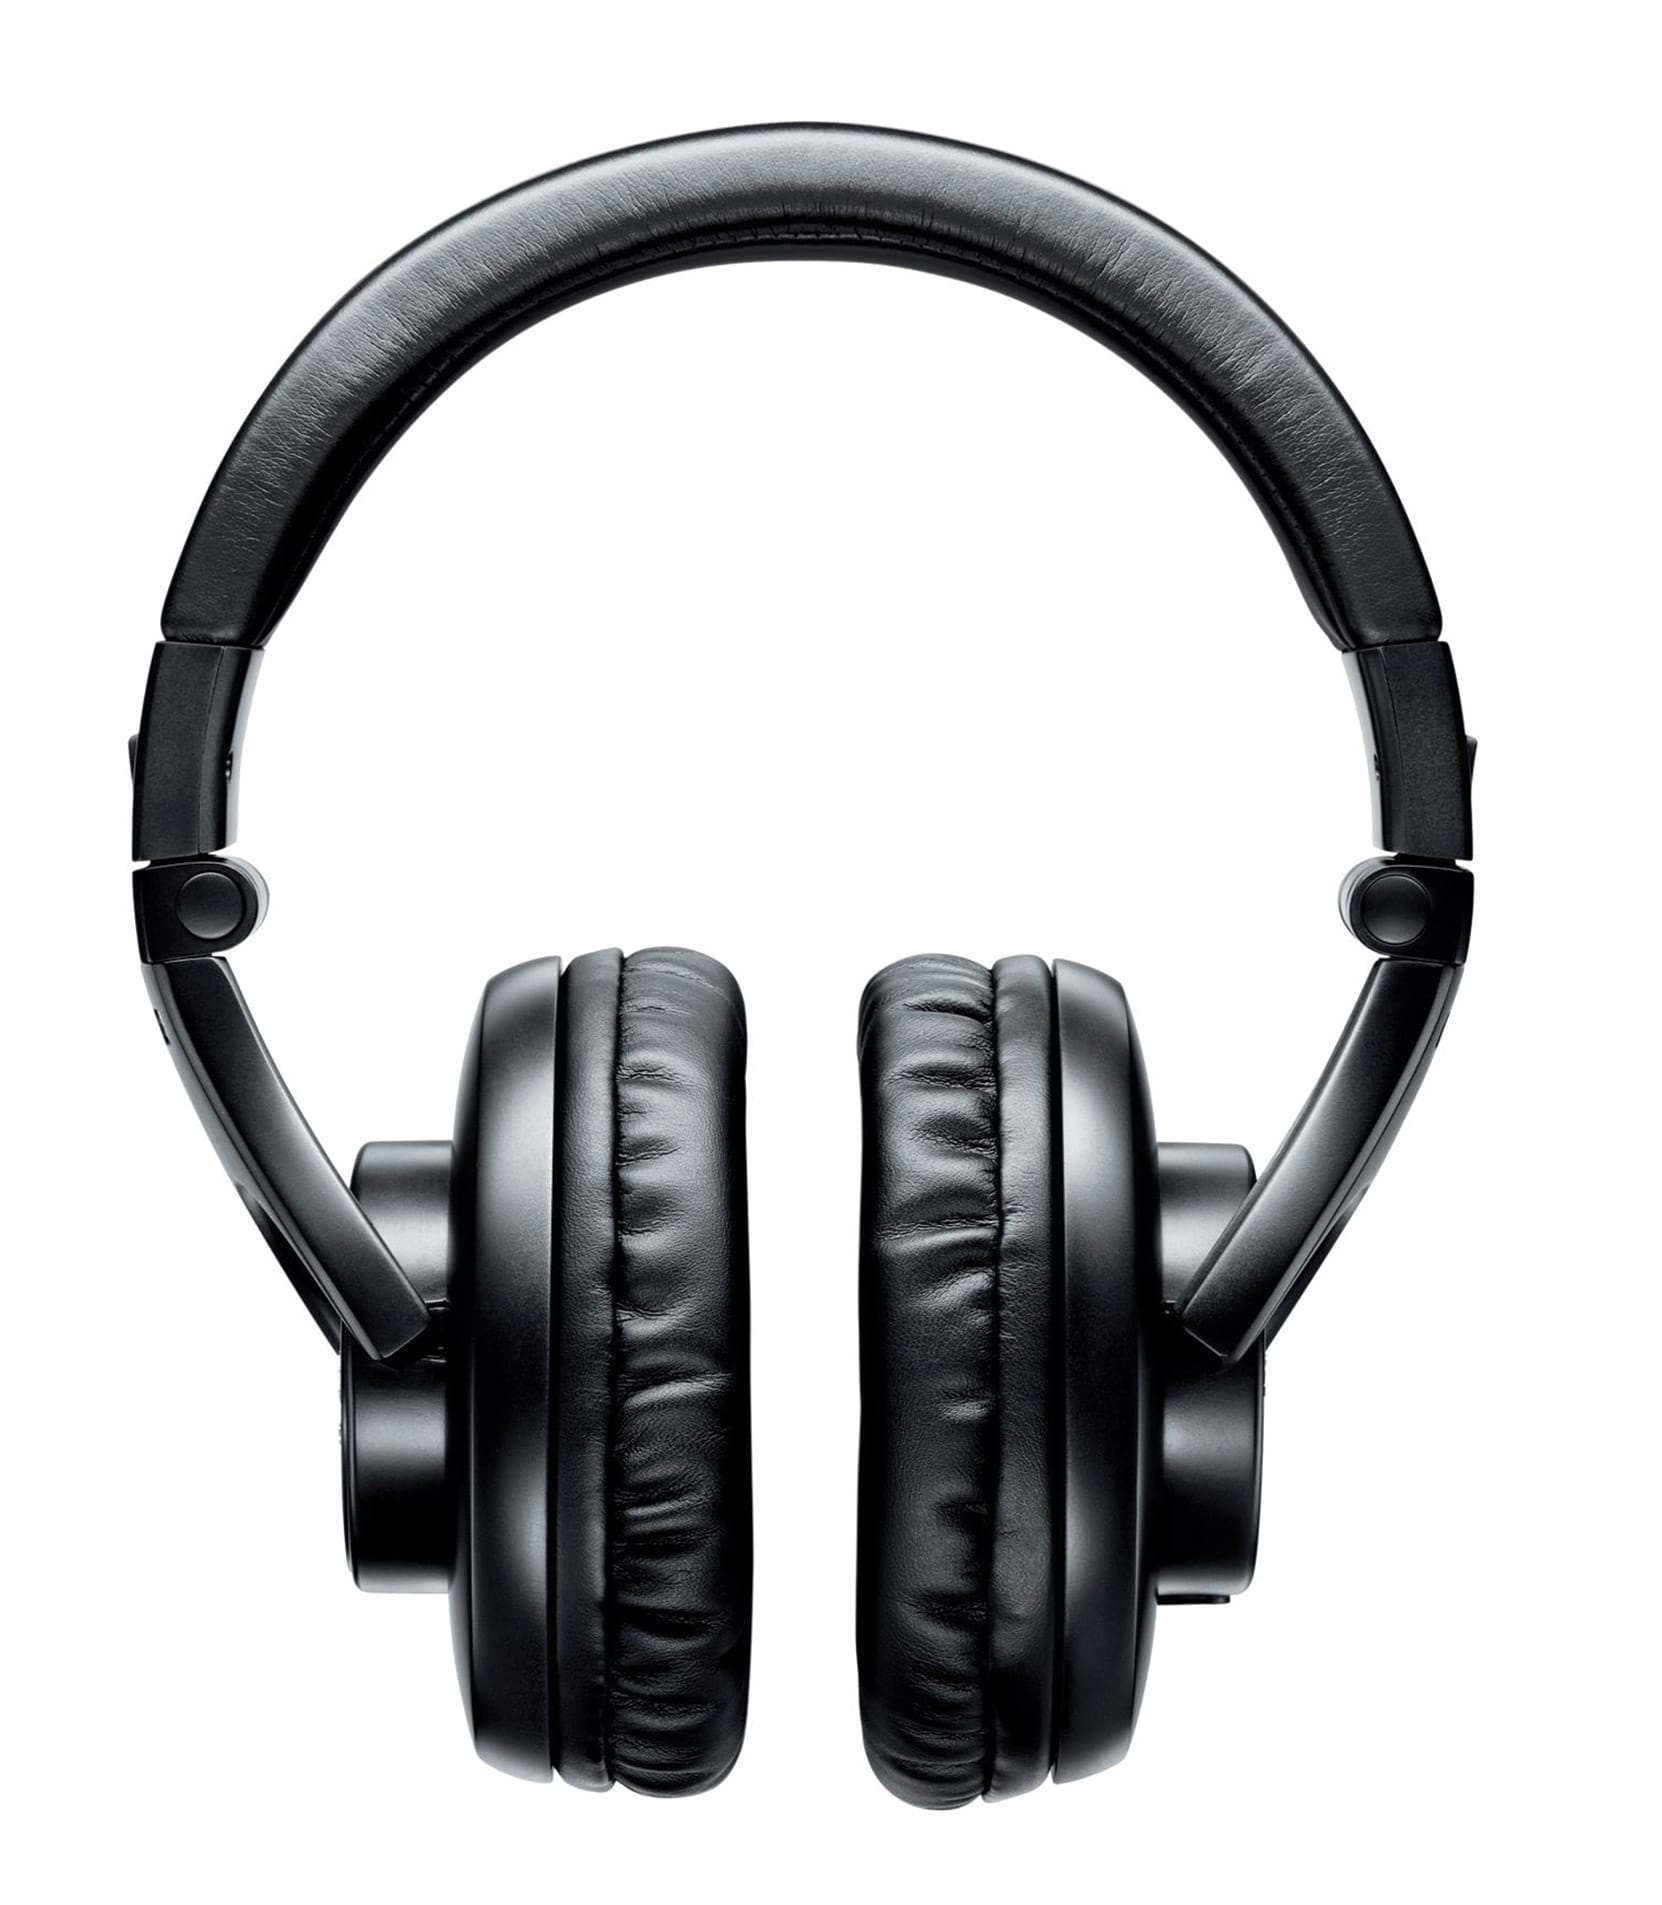 SRH440 E Professional Studio Headphones